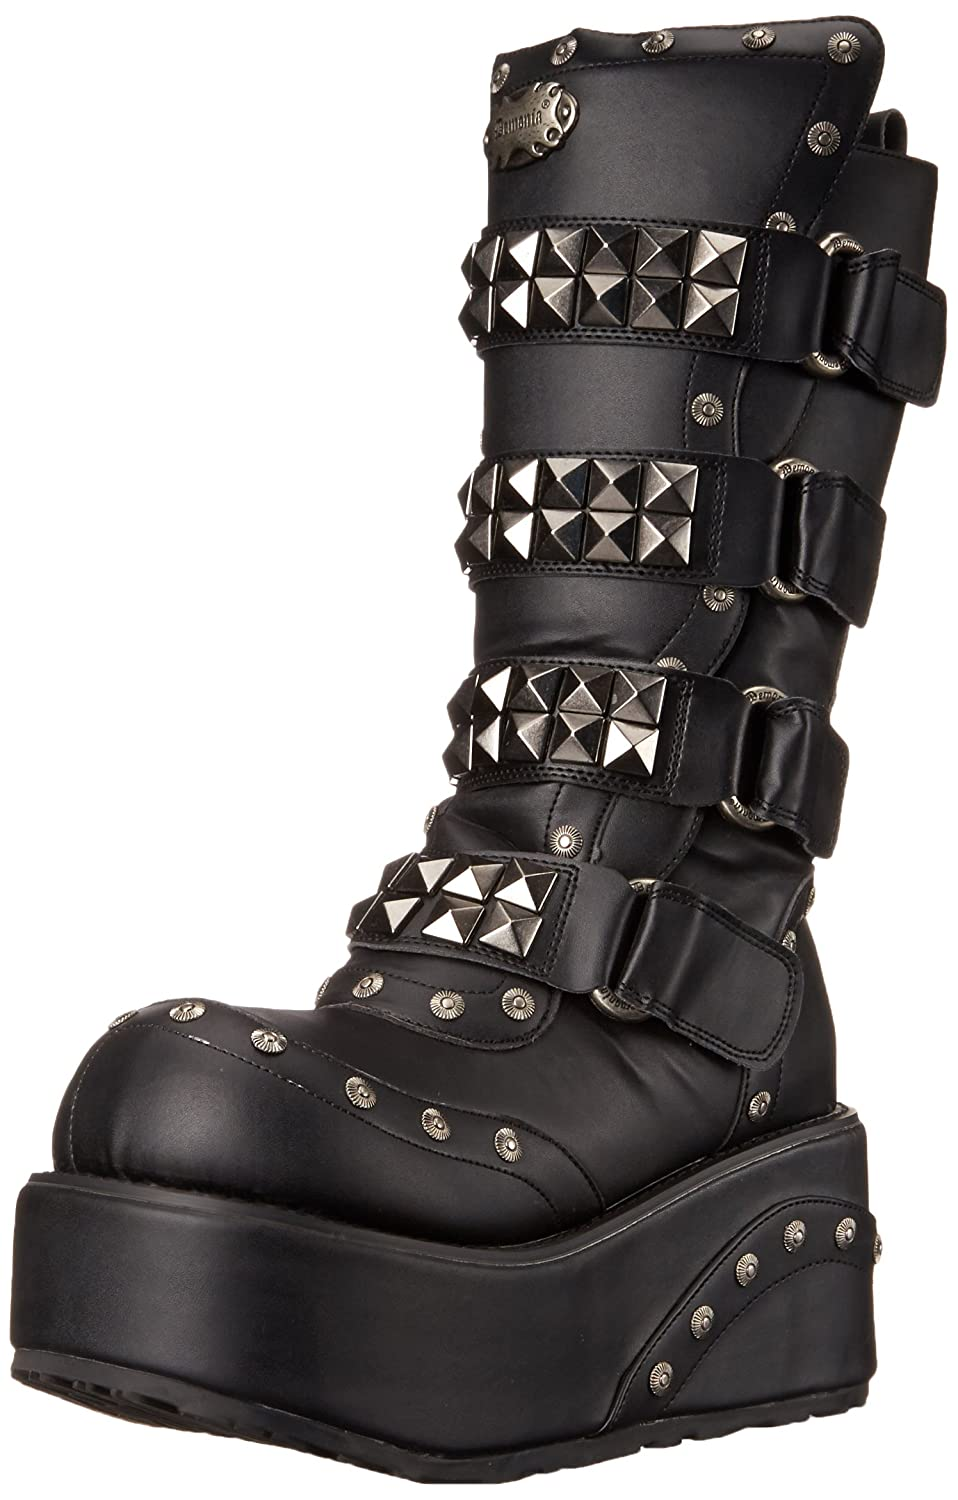 Demonia B07CR69ZCJ TRUCK-200 Blk UK PU UK 5 (EU (EU 38) - b951bc5 - piero.space